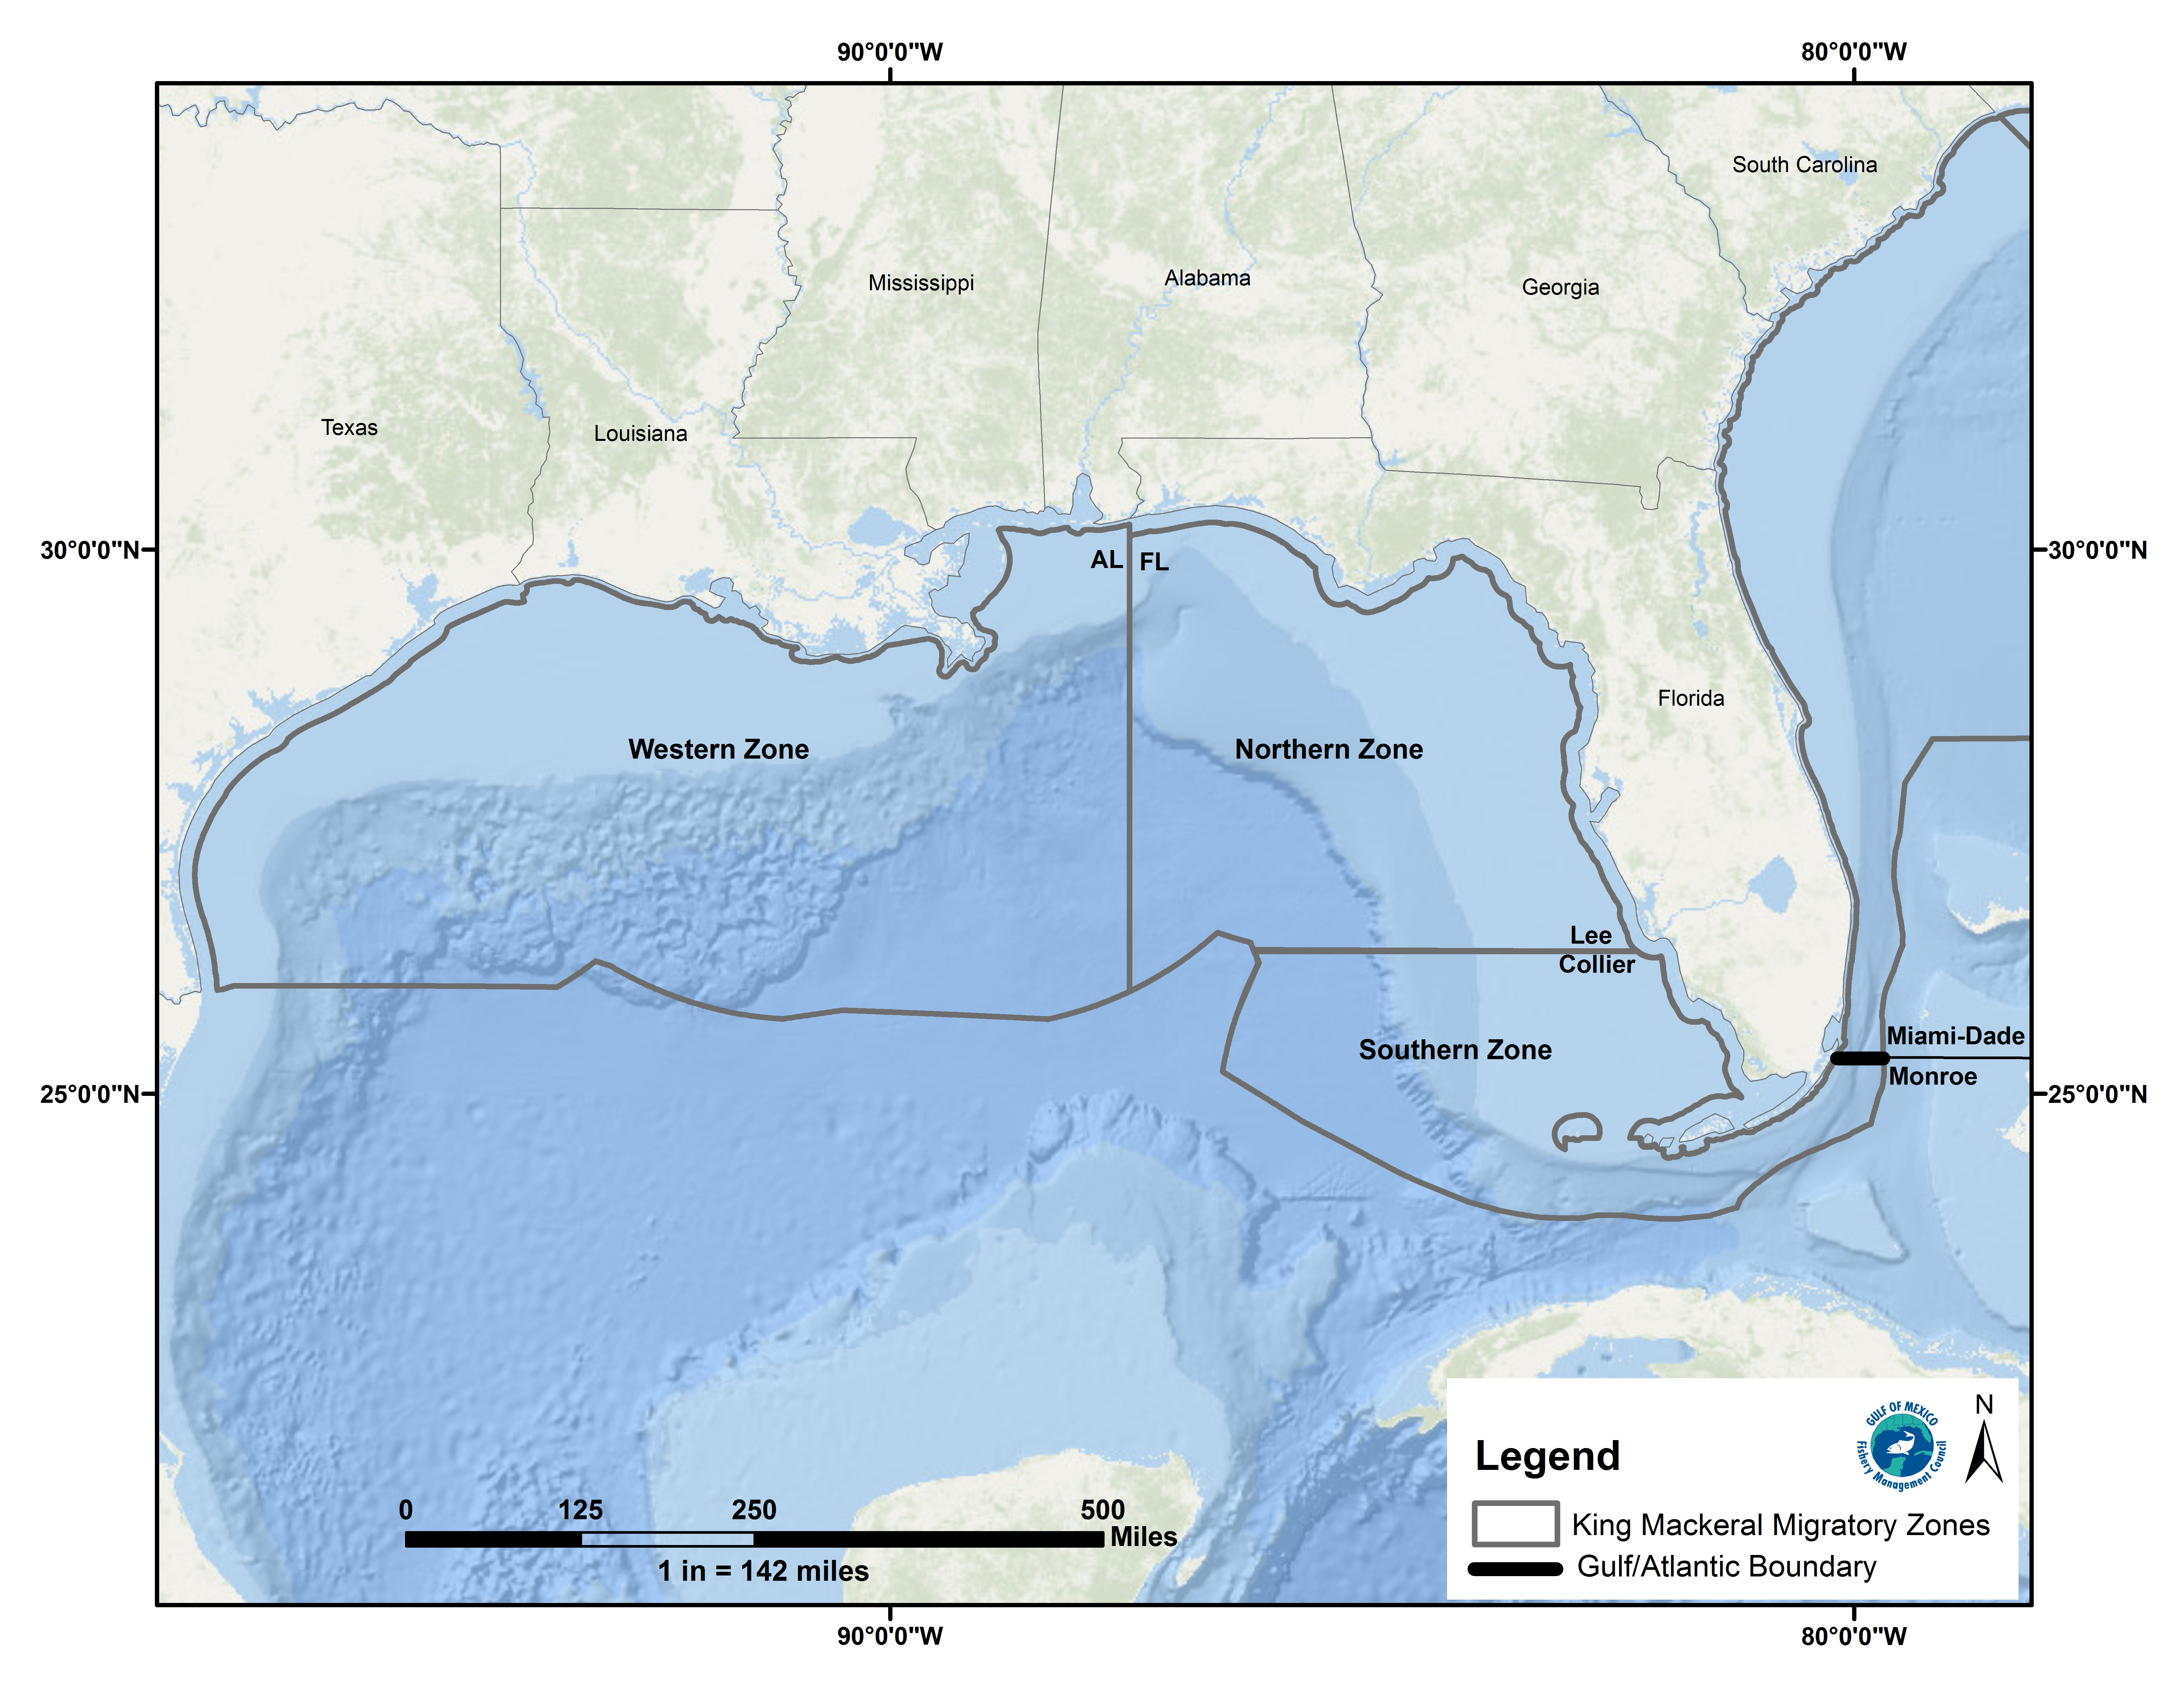 Zone Map Gulf Of Mexico on zone map washington, zone map pacific, zone 9 map, zone map arkansas, ecosystems with map of mexico, zone map usa, zone map new england, zone map florida, zone map canada, zone map north america, zone map wyoming,